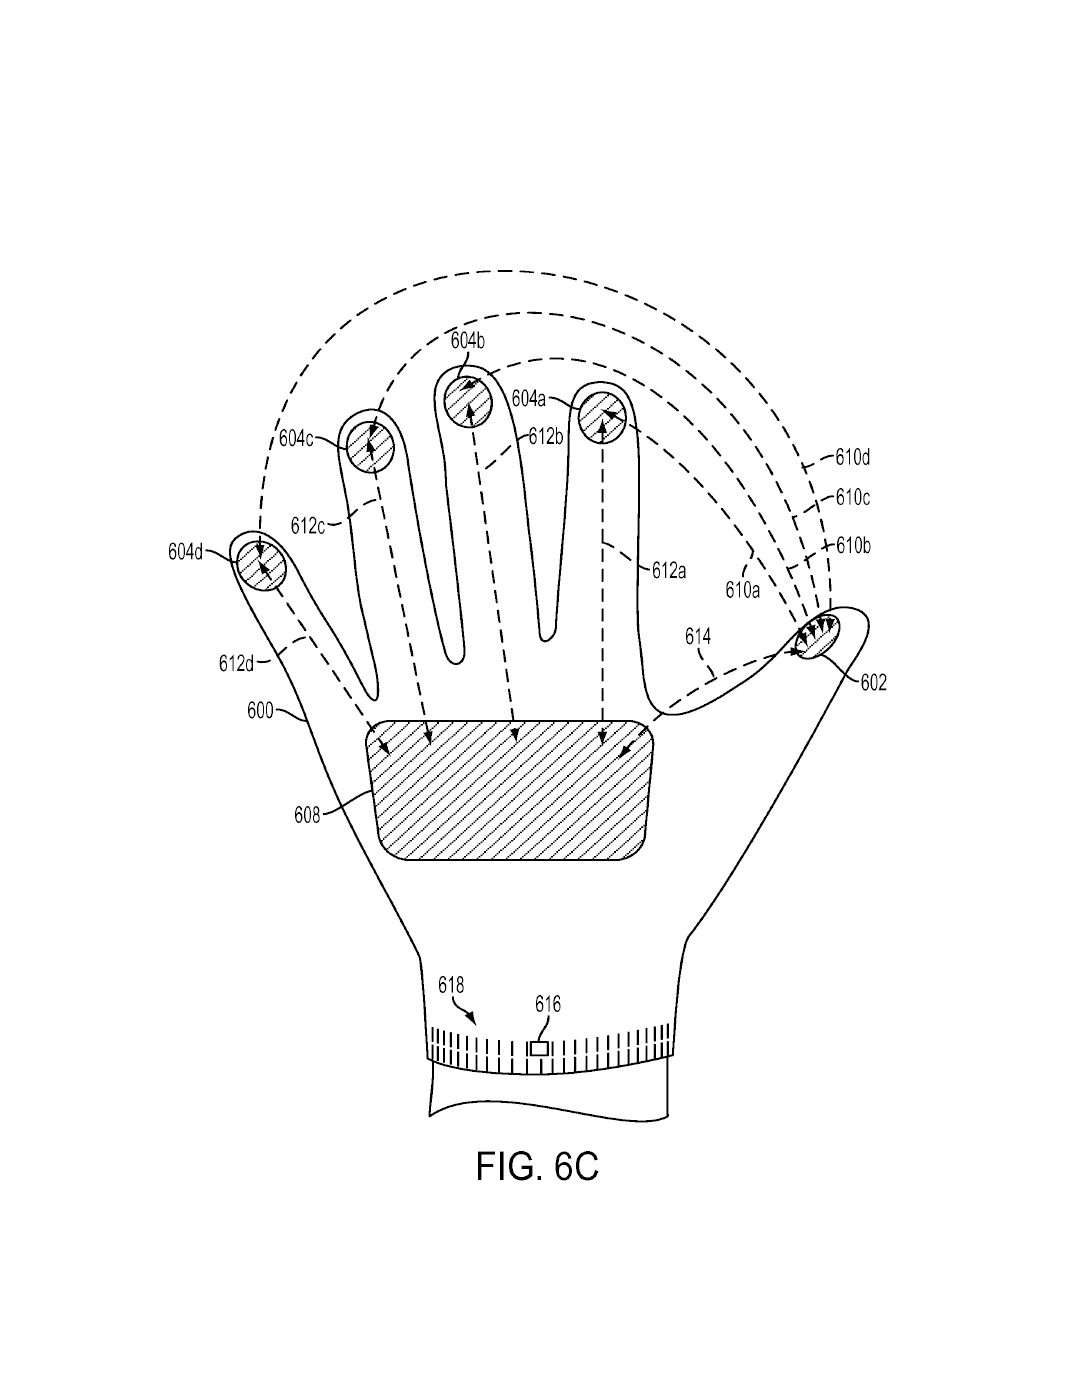 Sony Files Three Patents For Glove Controller For Use With